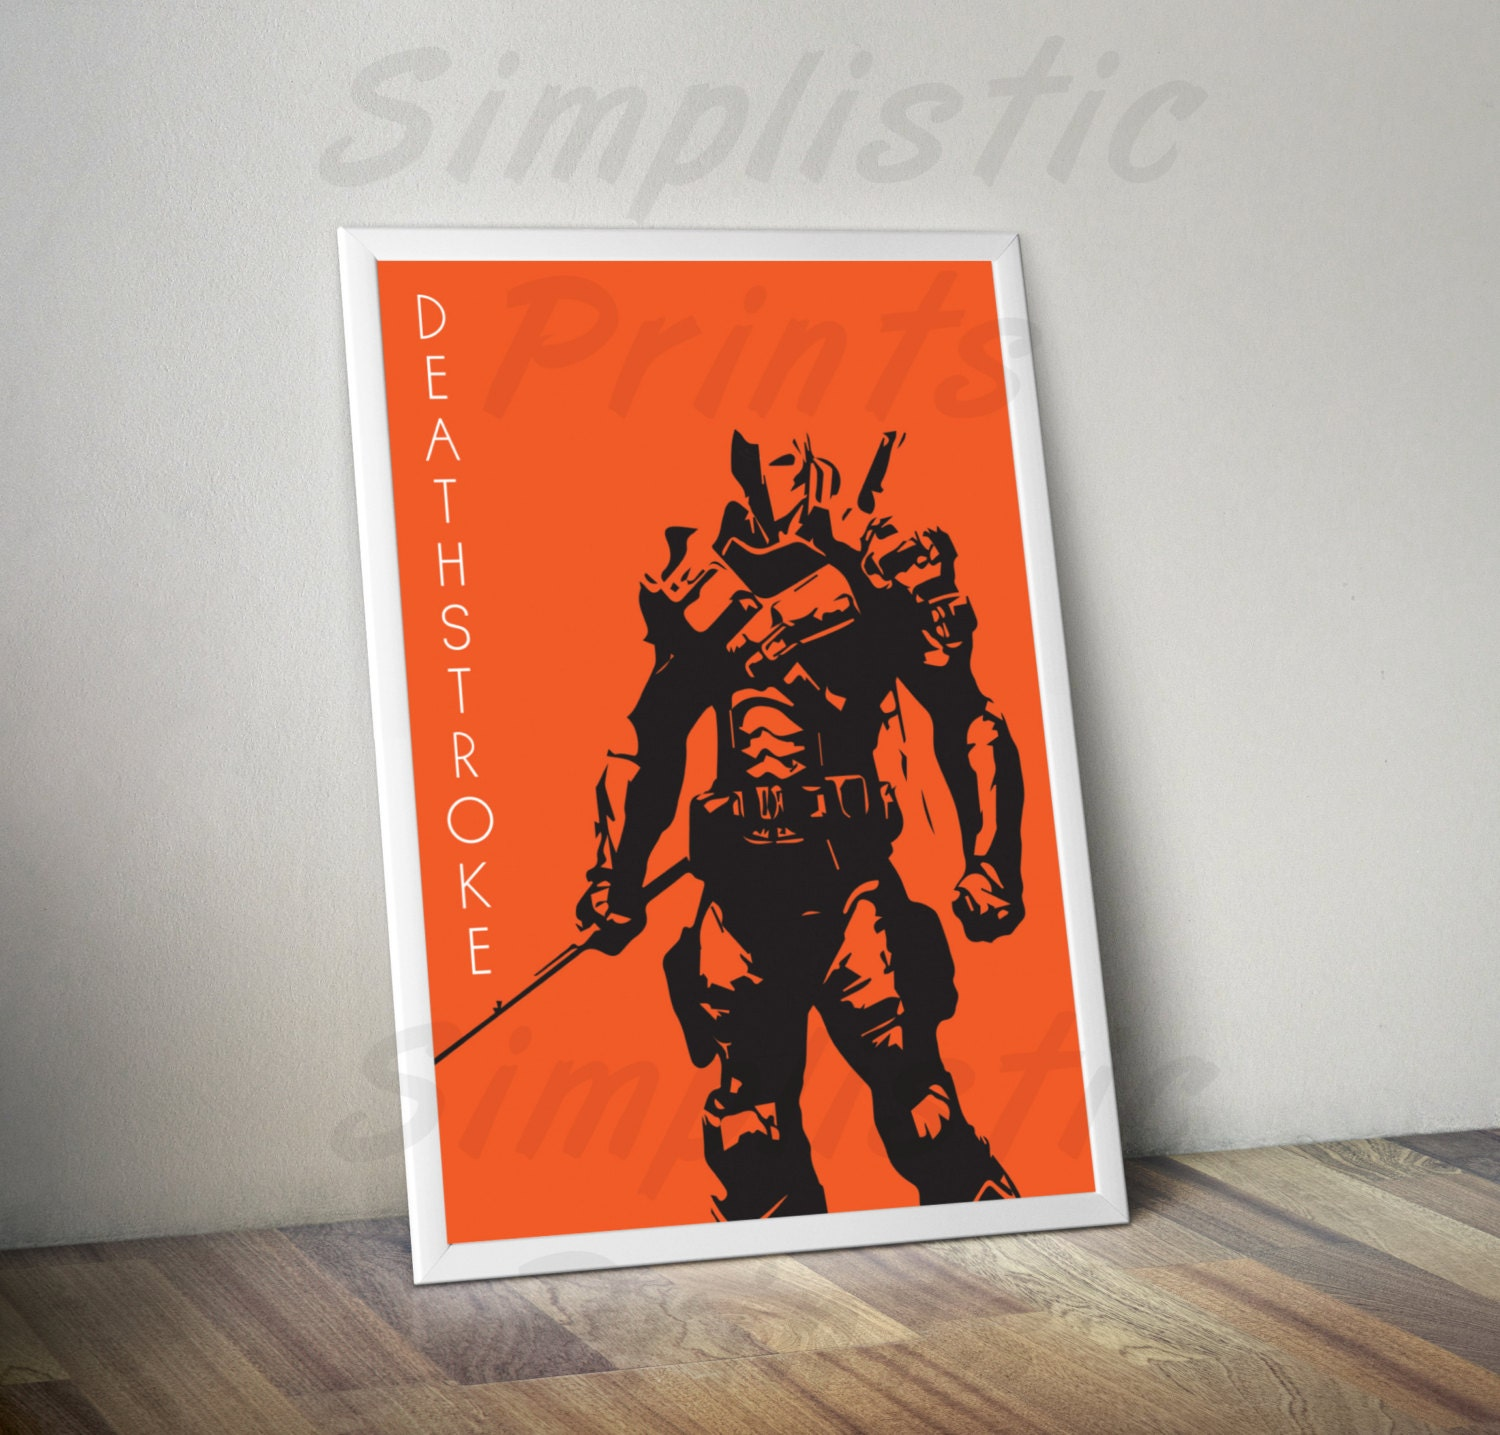 Deathstroke minimalist poster wall art comic book art 8x10 for Minimal art book